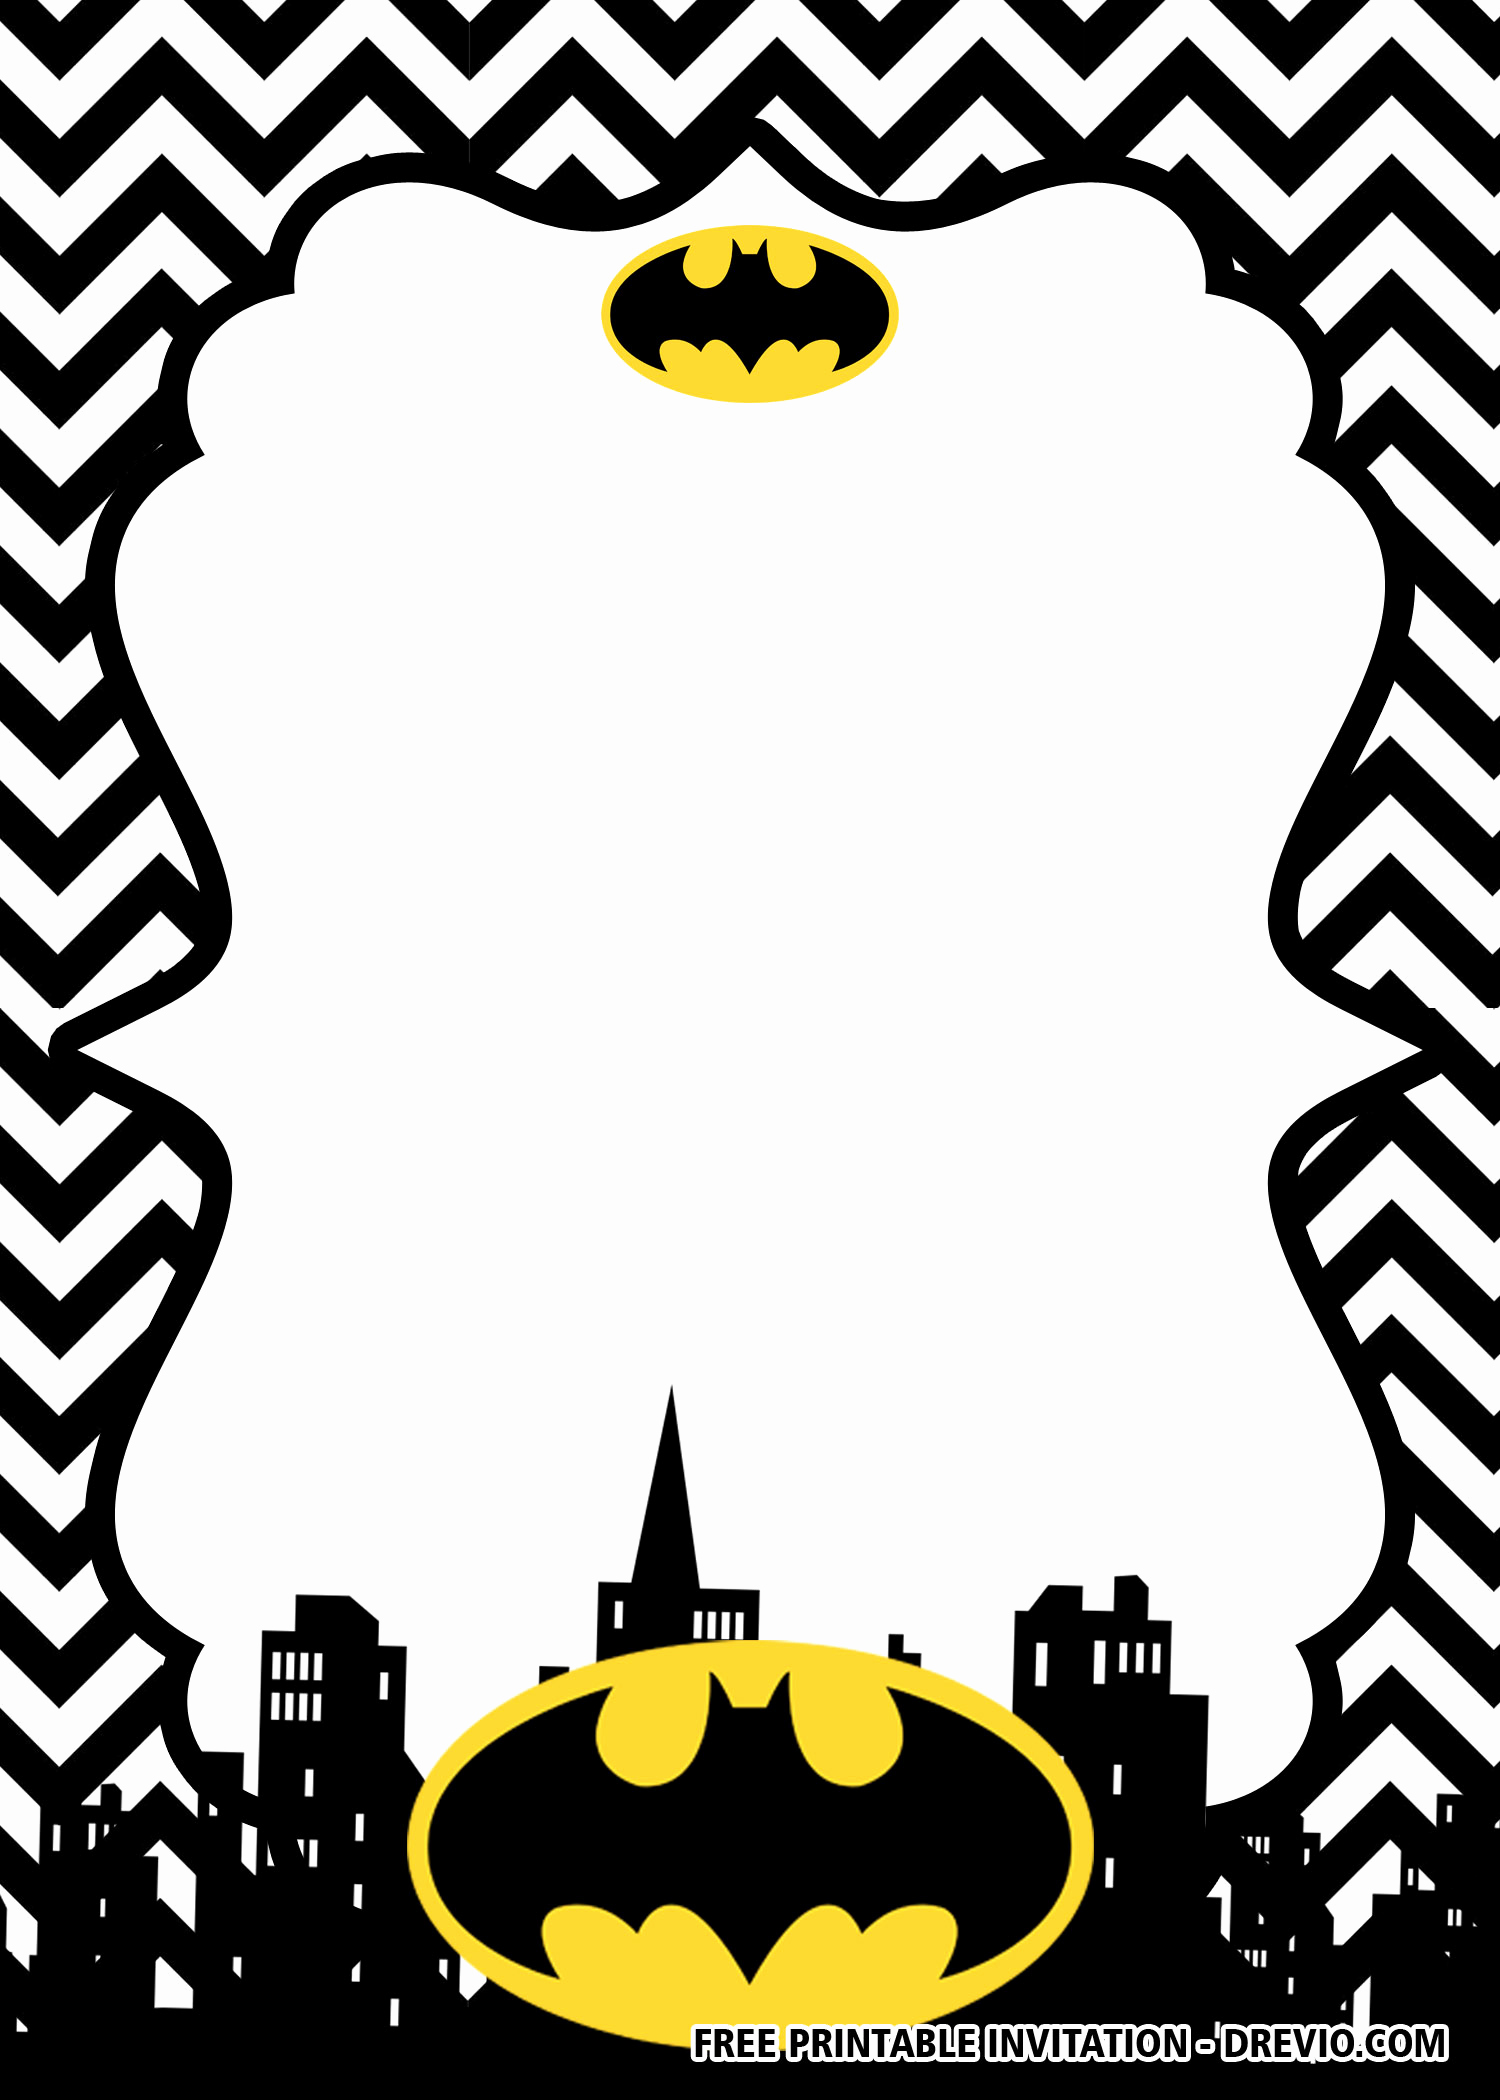 Batman Birthday Invitation Templates Awesome Free Printable Batman Birthday Invitation Templates